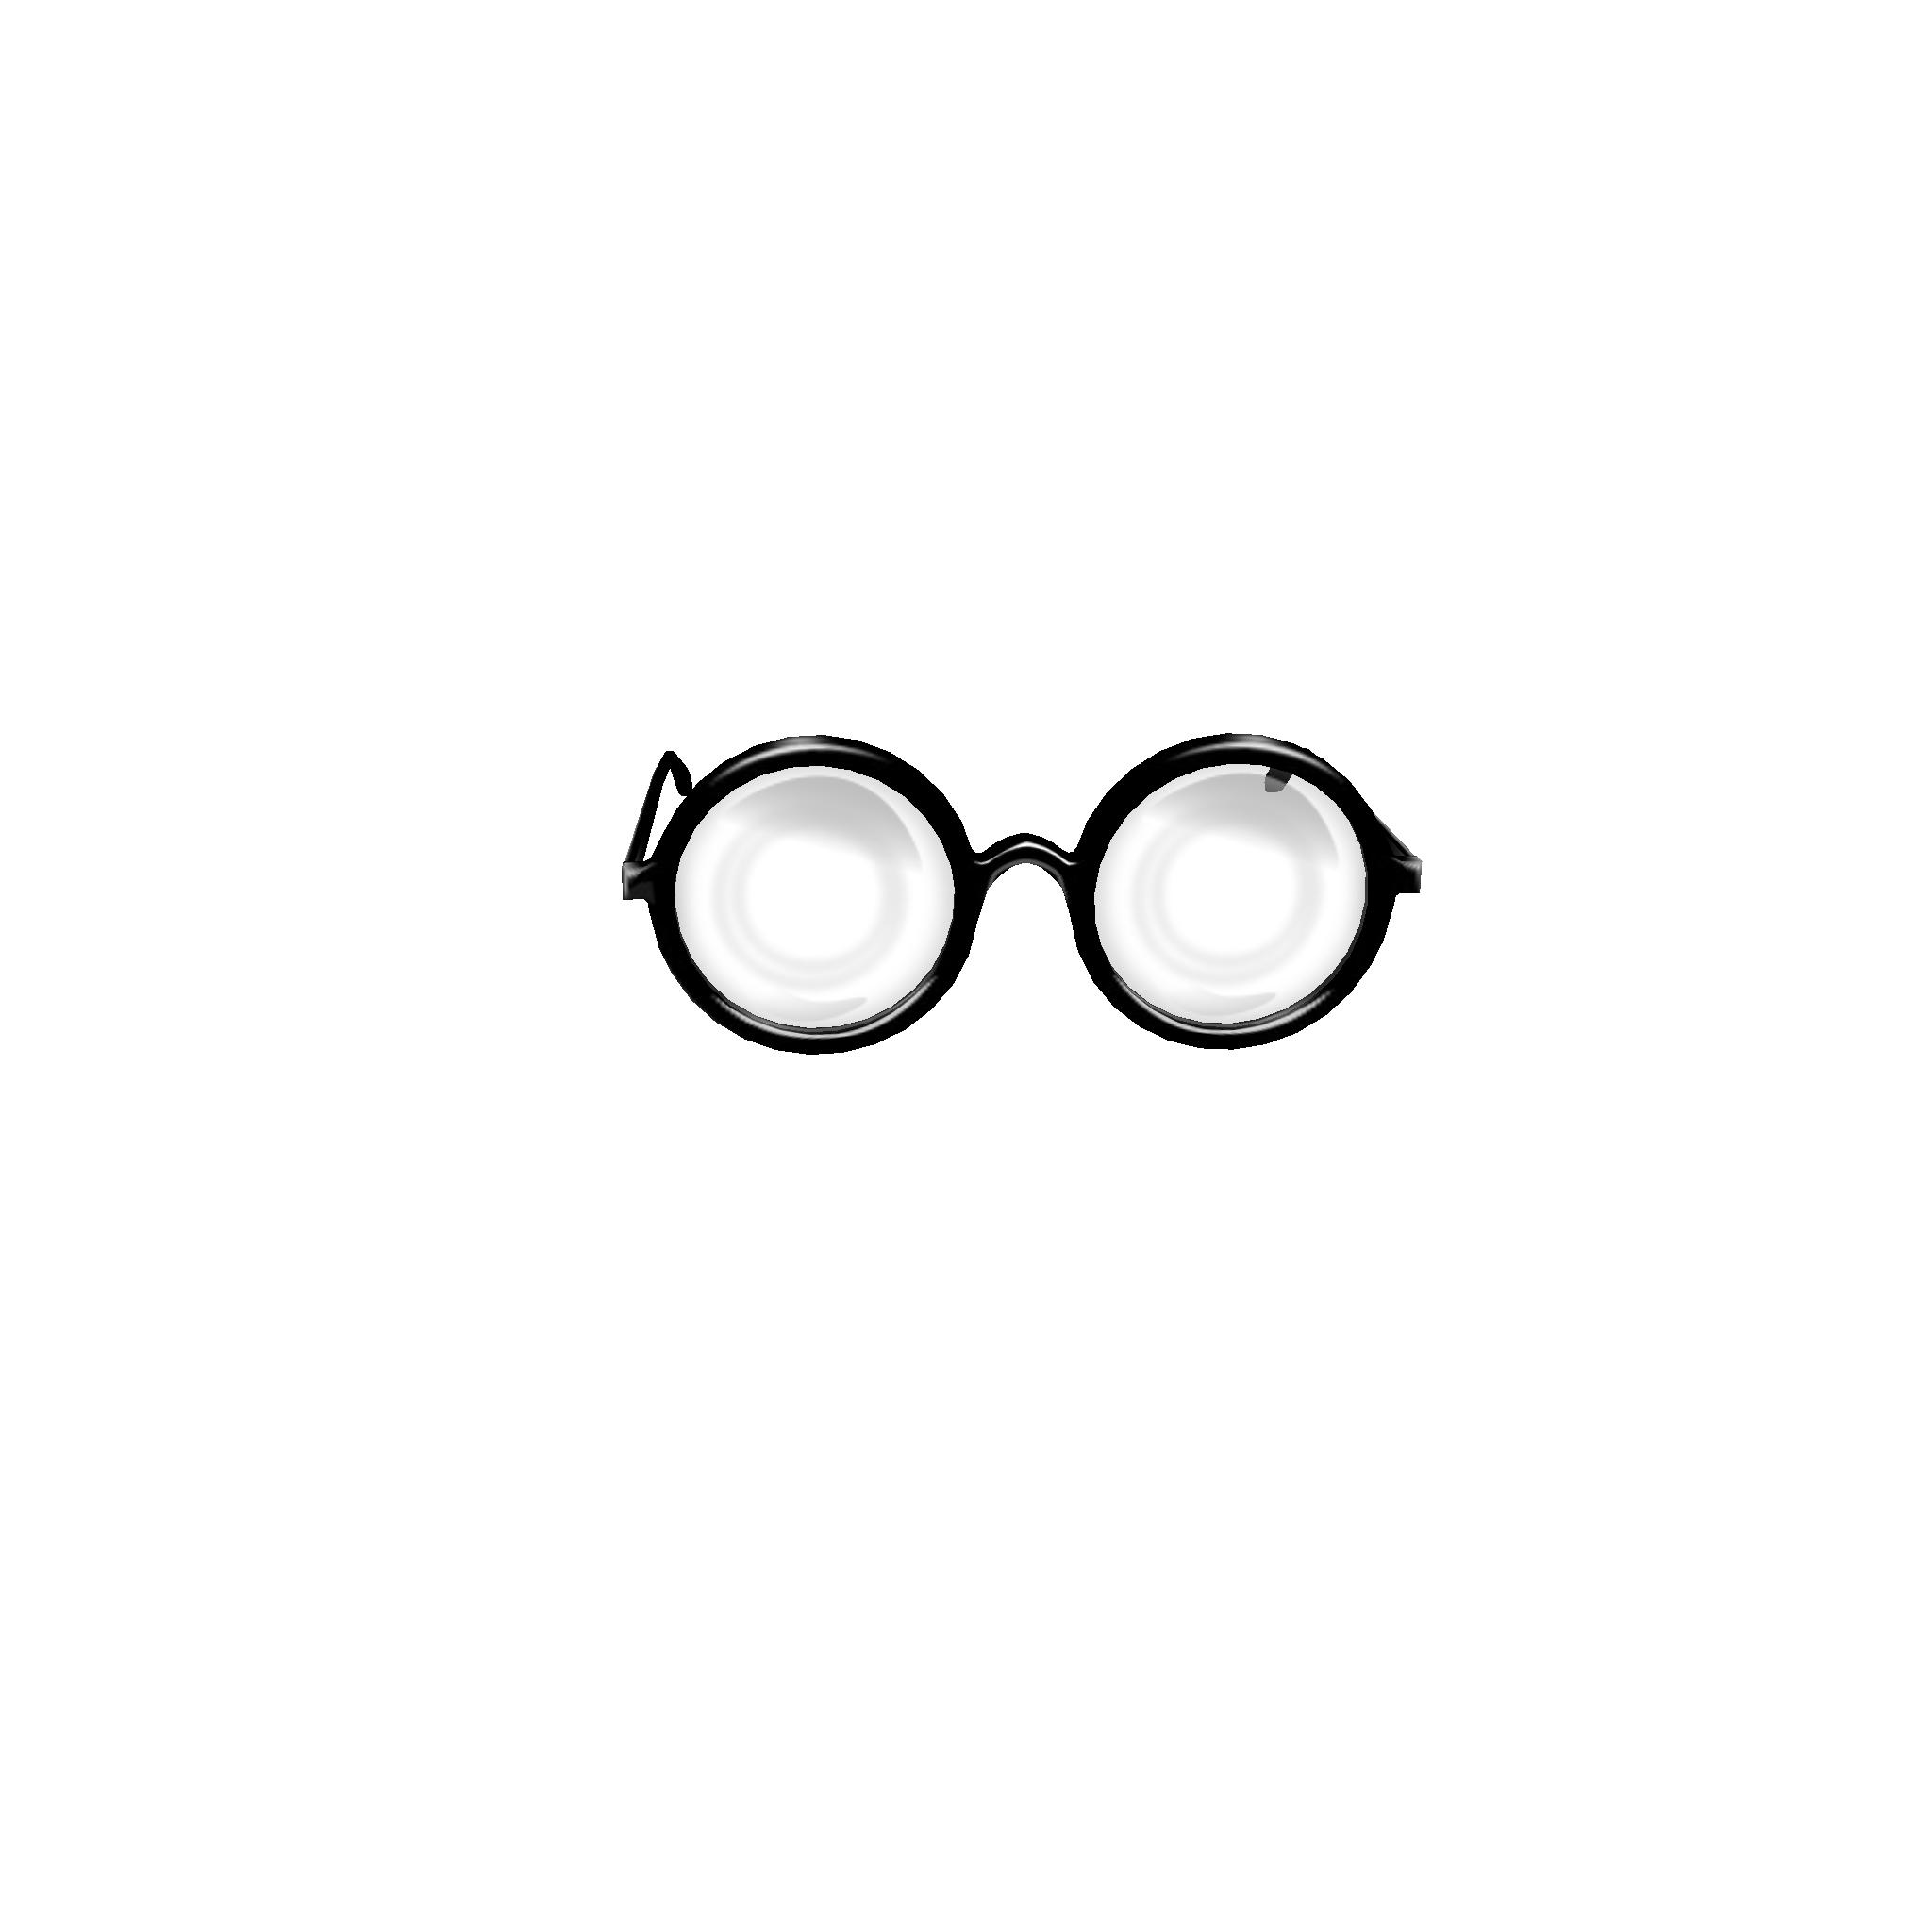 Goggles transparent circle. Glasses png images free